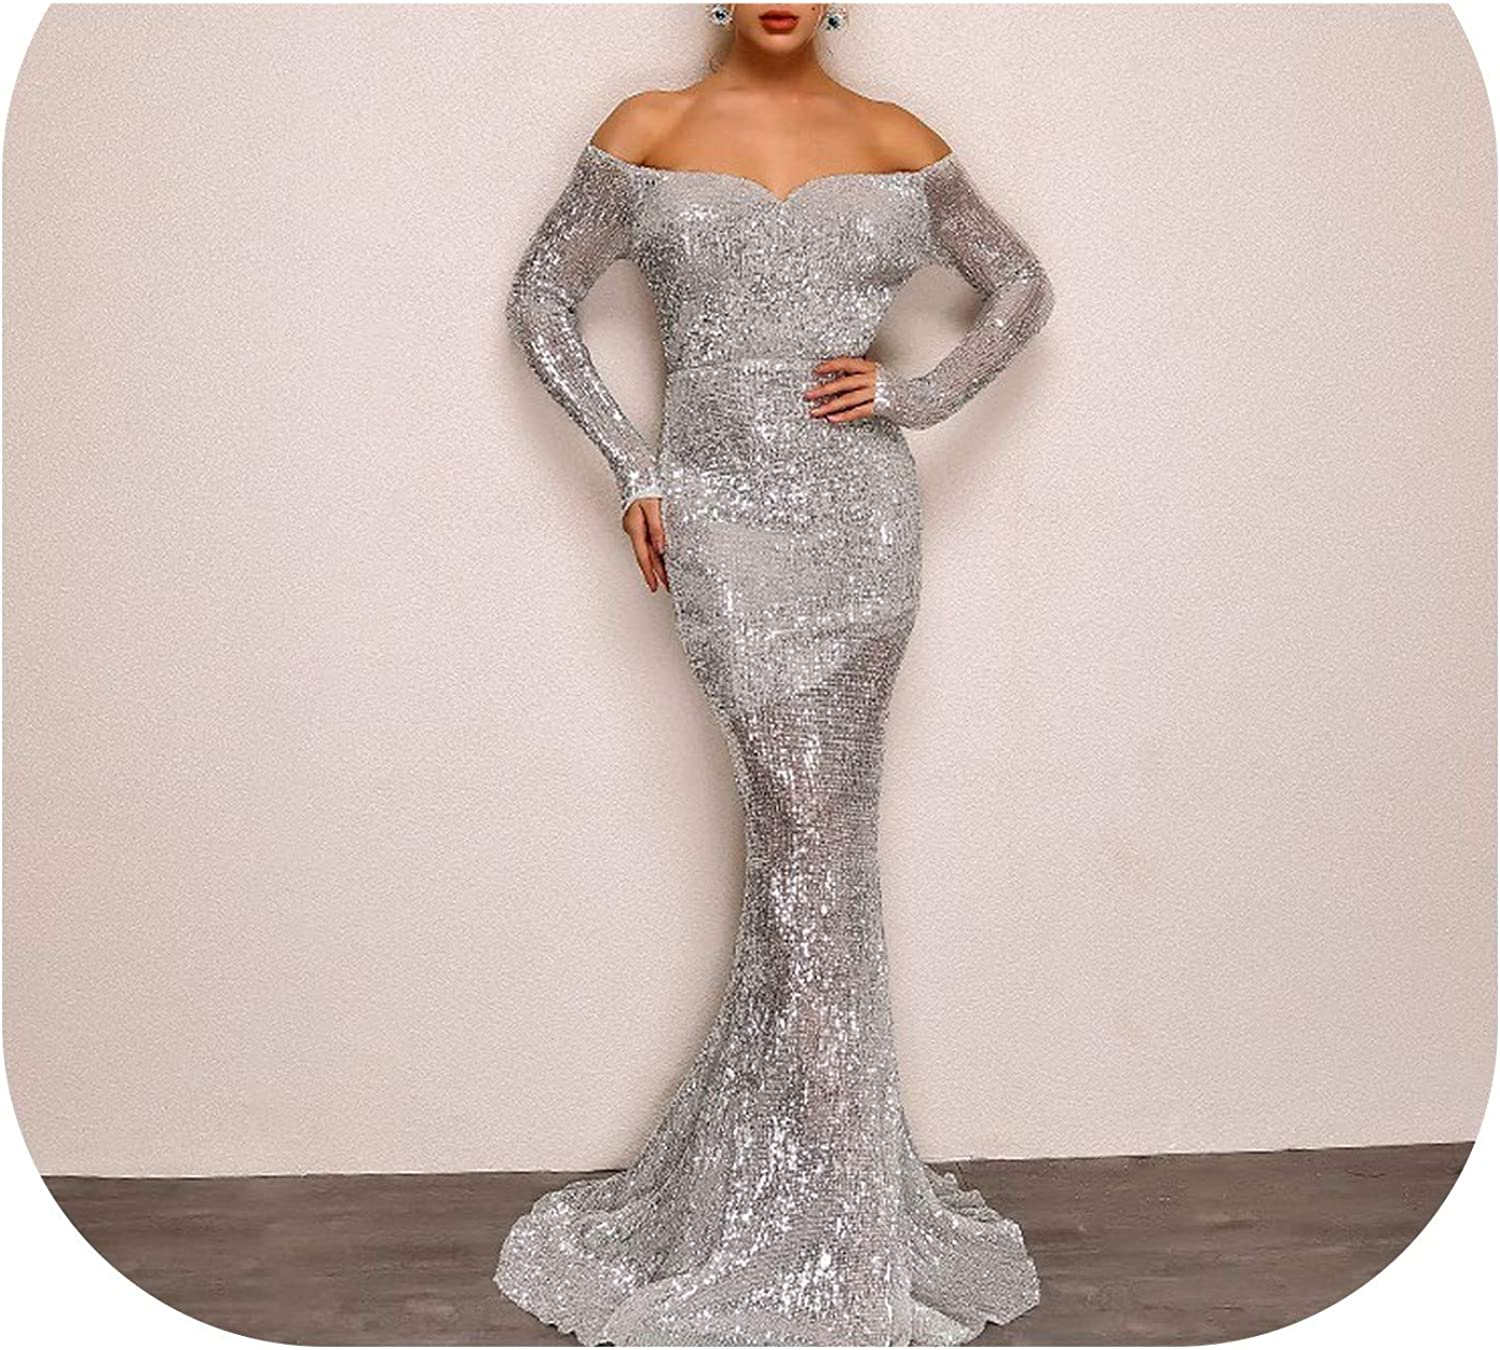 Women Long Party Dress Off Should Sequin Dress Silver FloorLength Mermaid Dresses